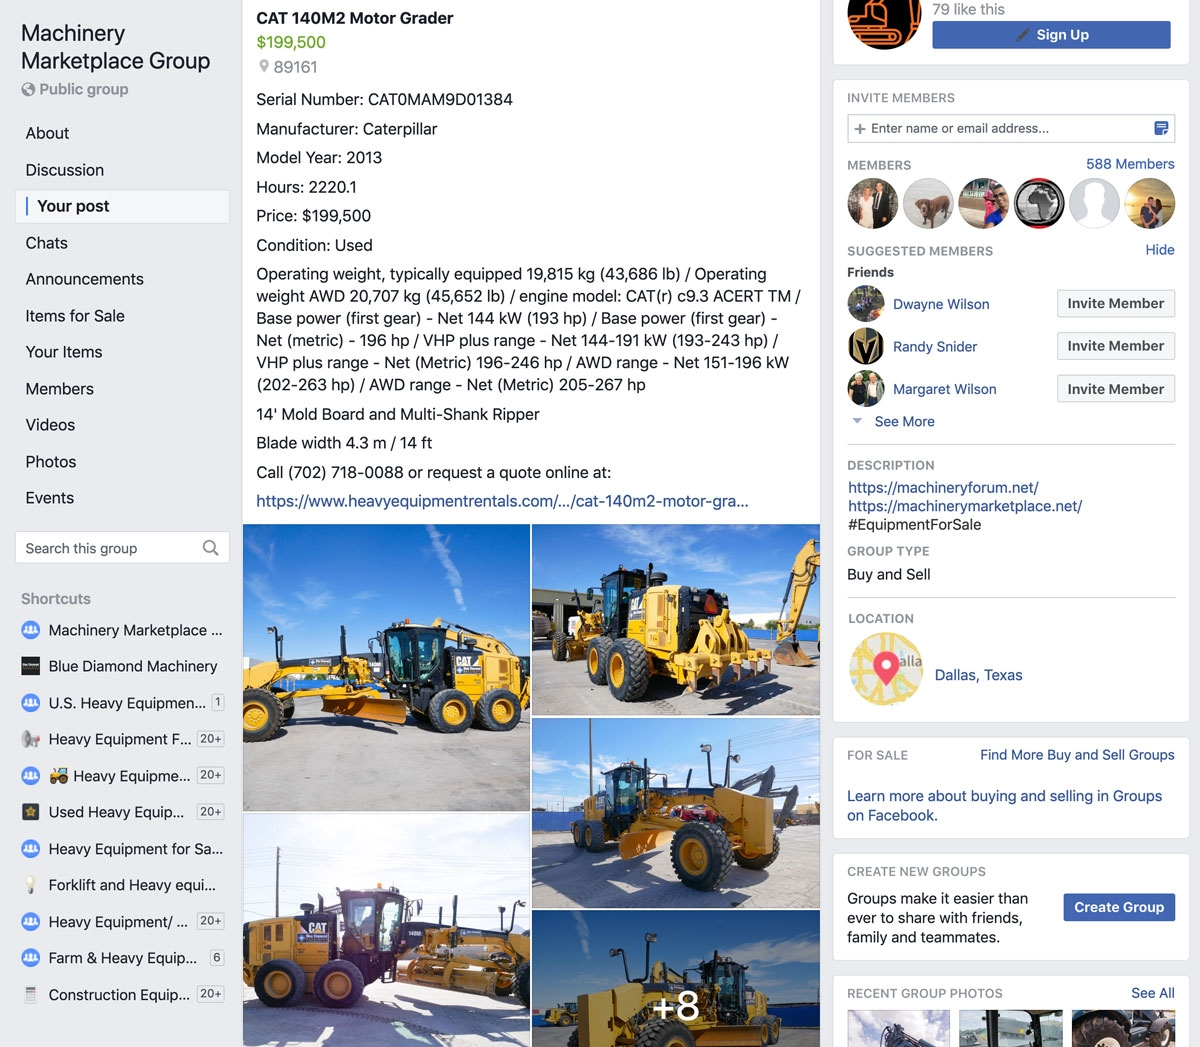 Machinery Marketplace Facebook Group